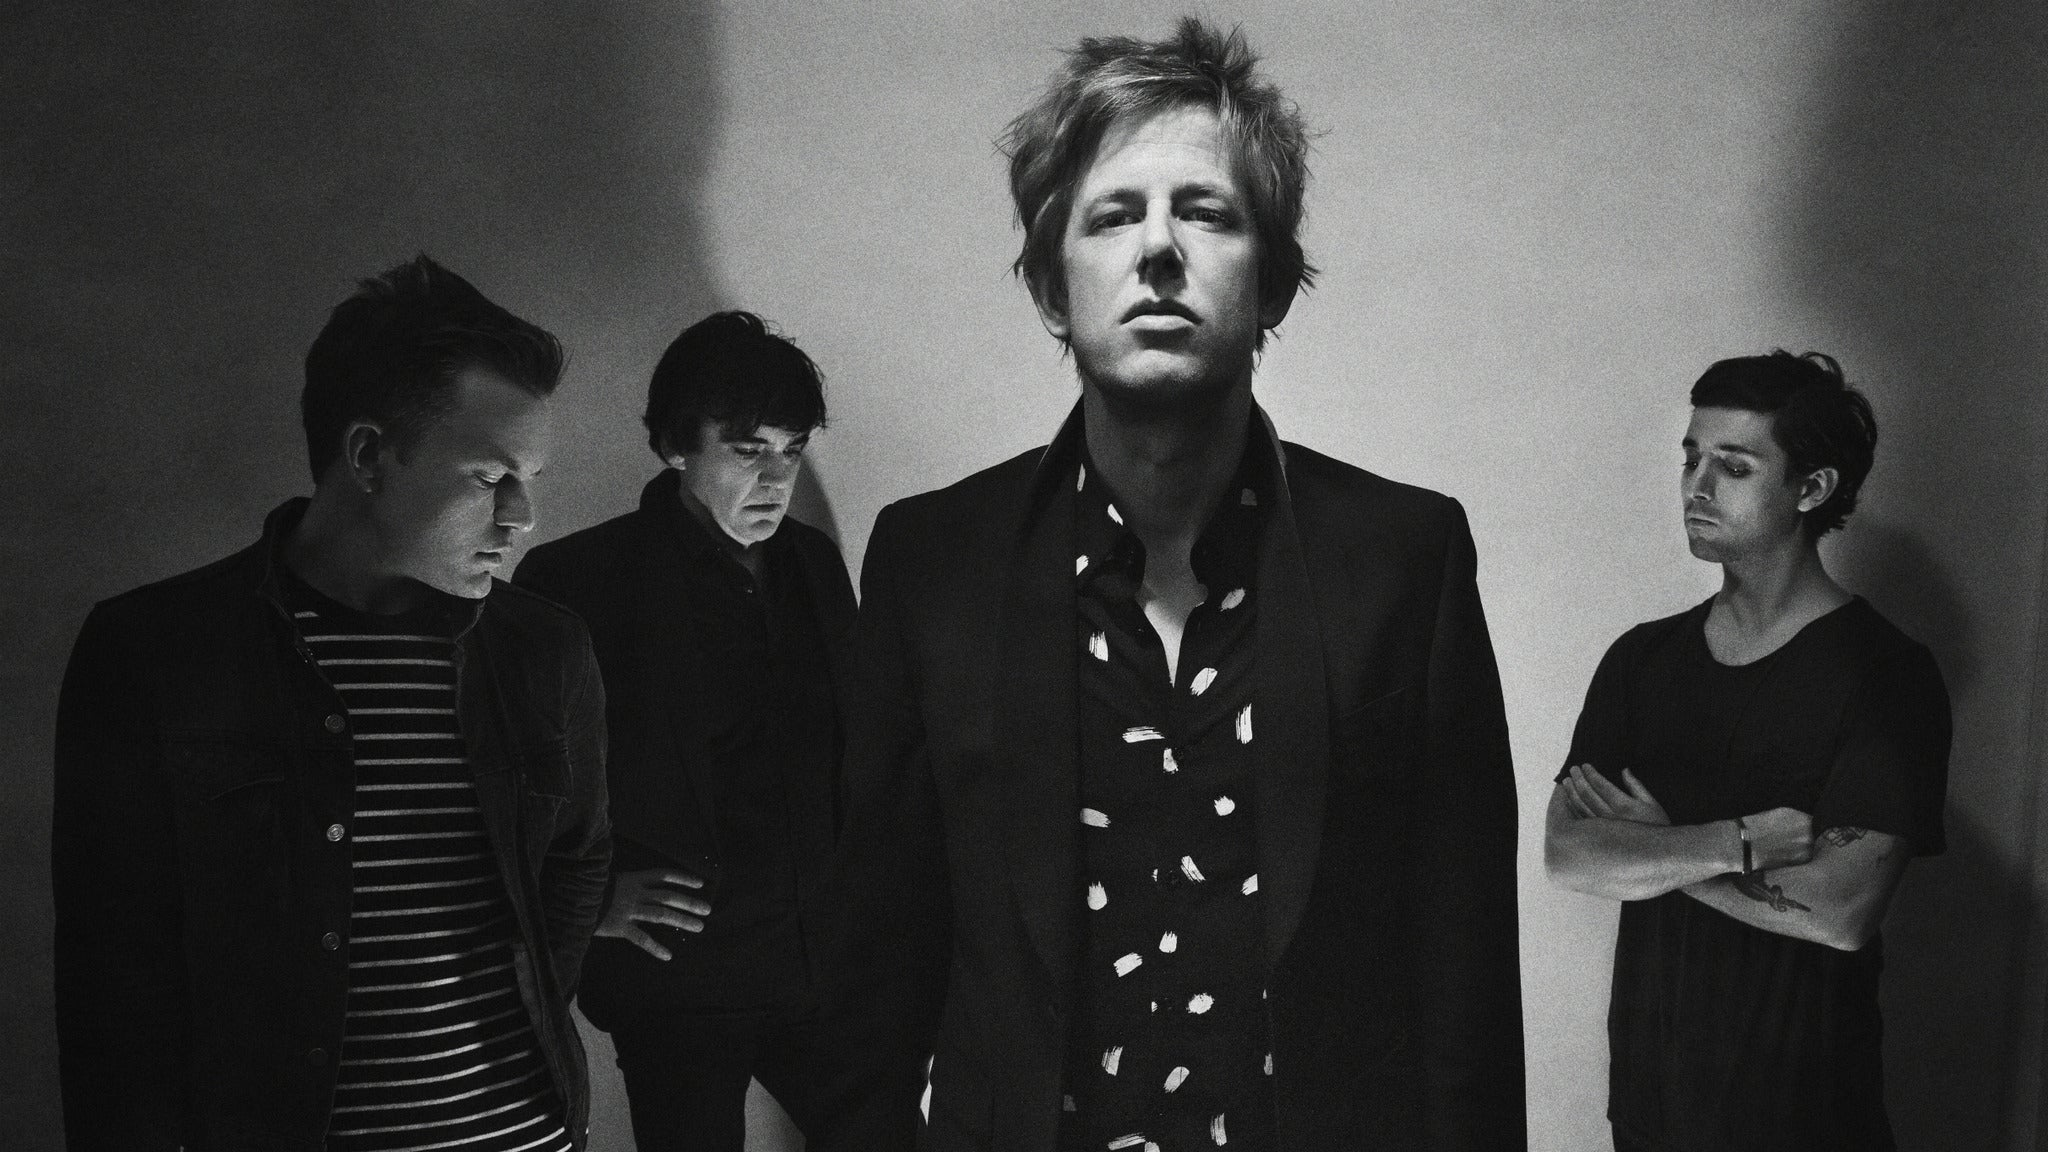 92.5 The River Presents Spoon at Blue Hills Bank Pavilion